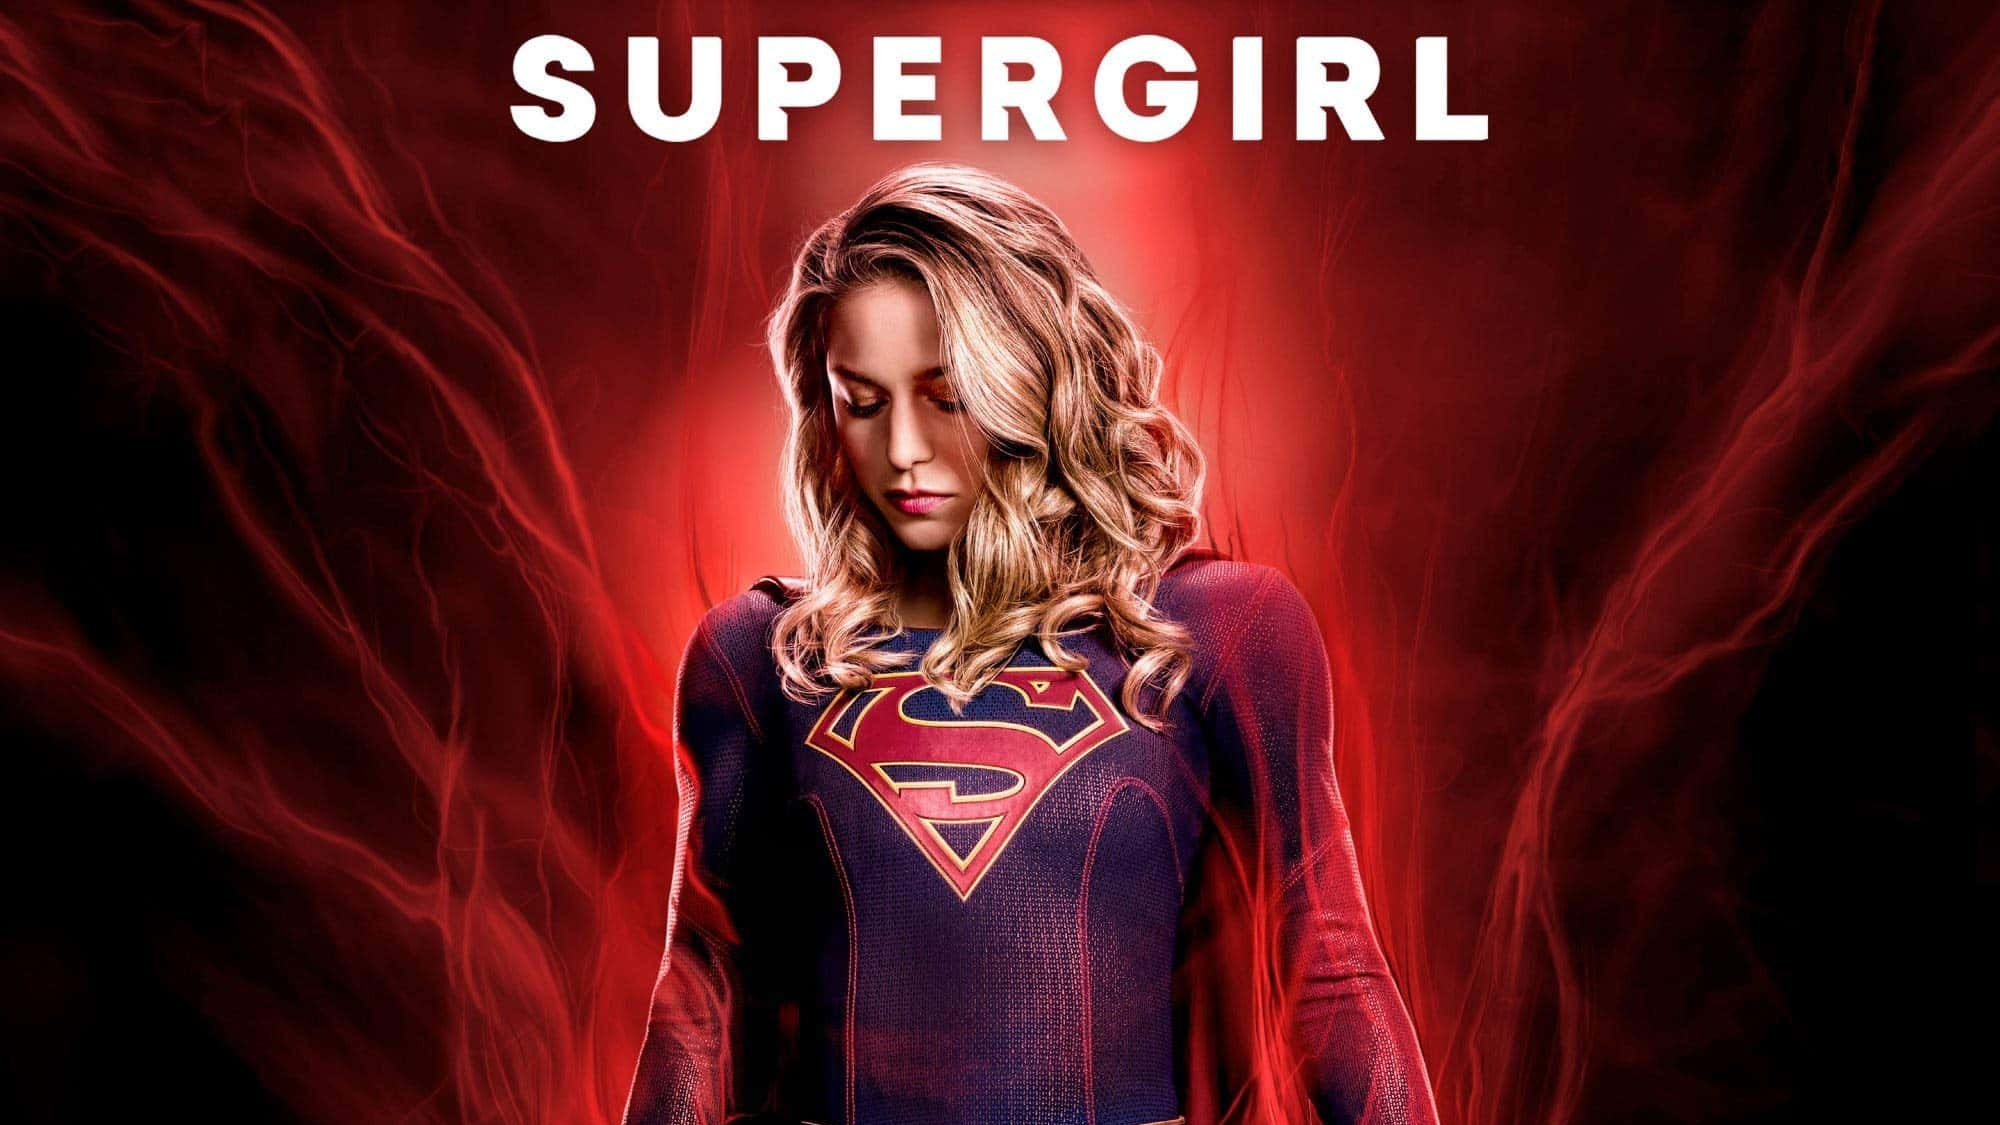 Supergirl movie release date cast trailer